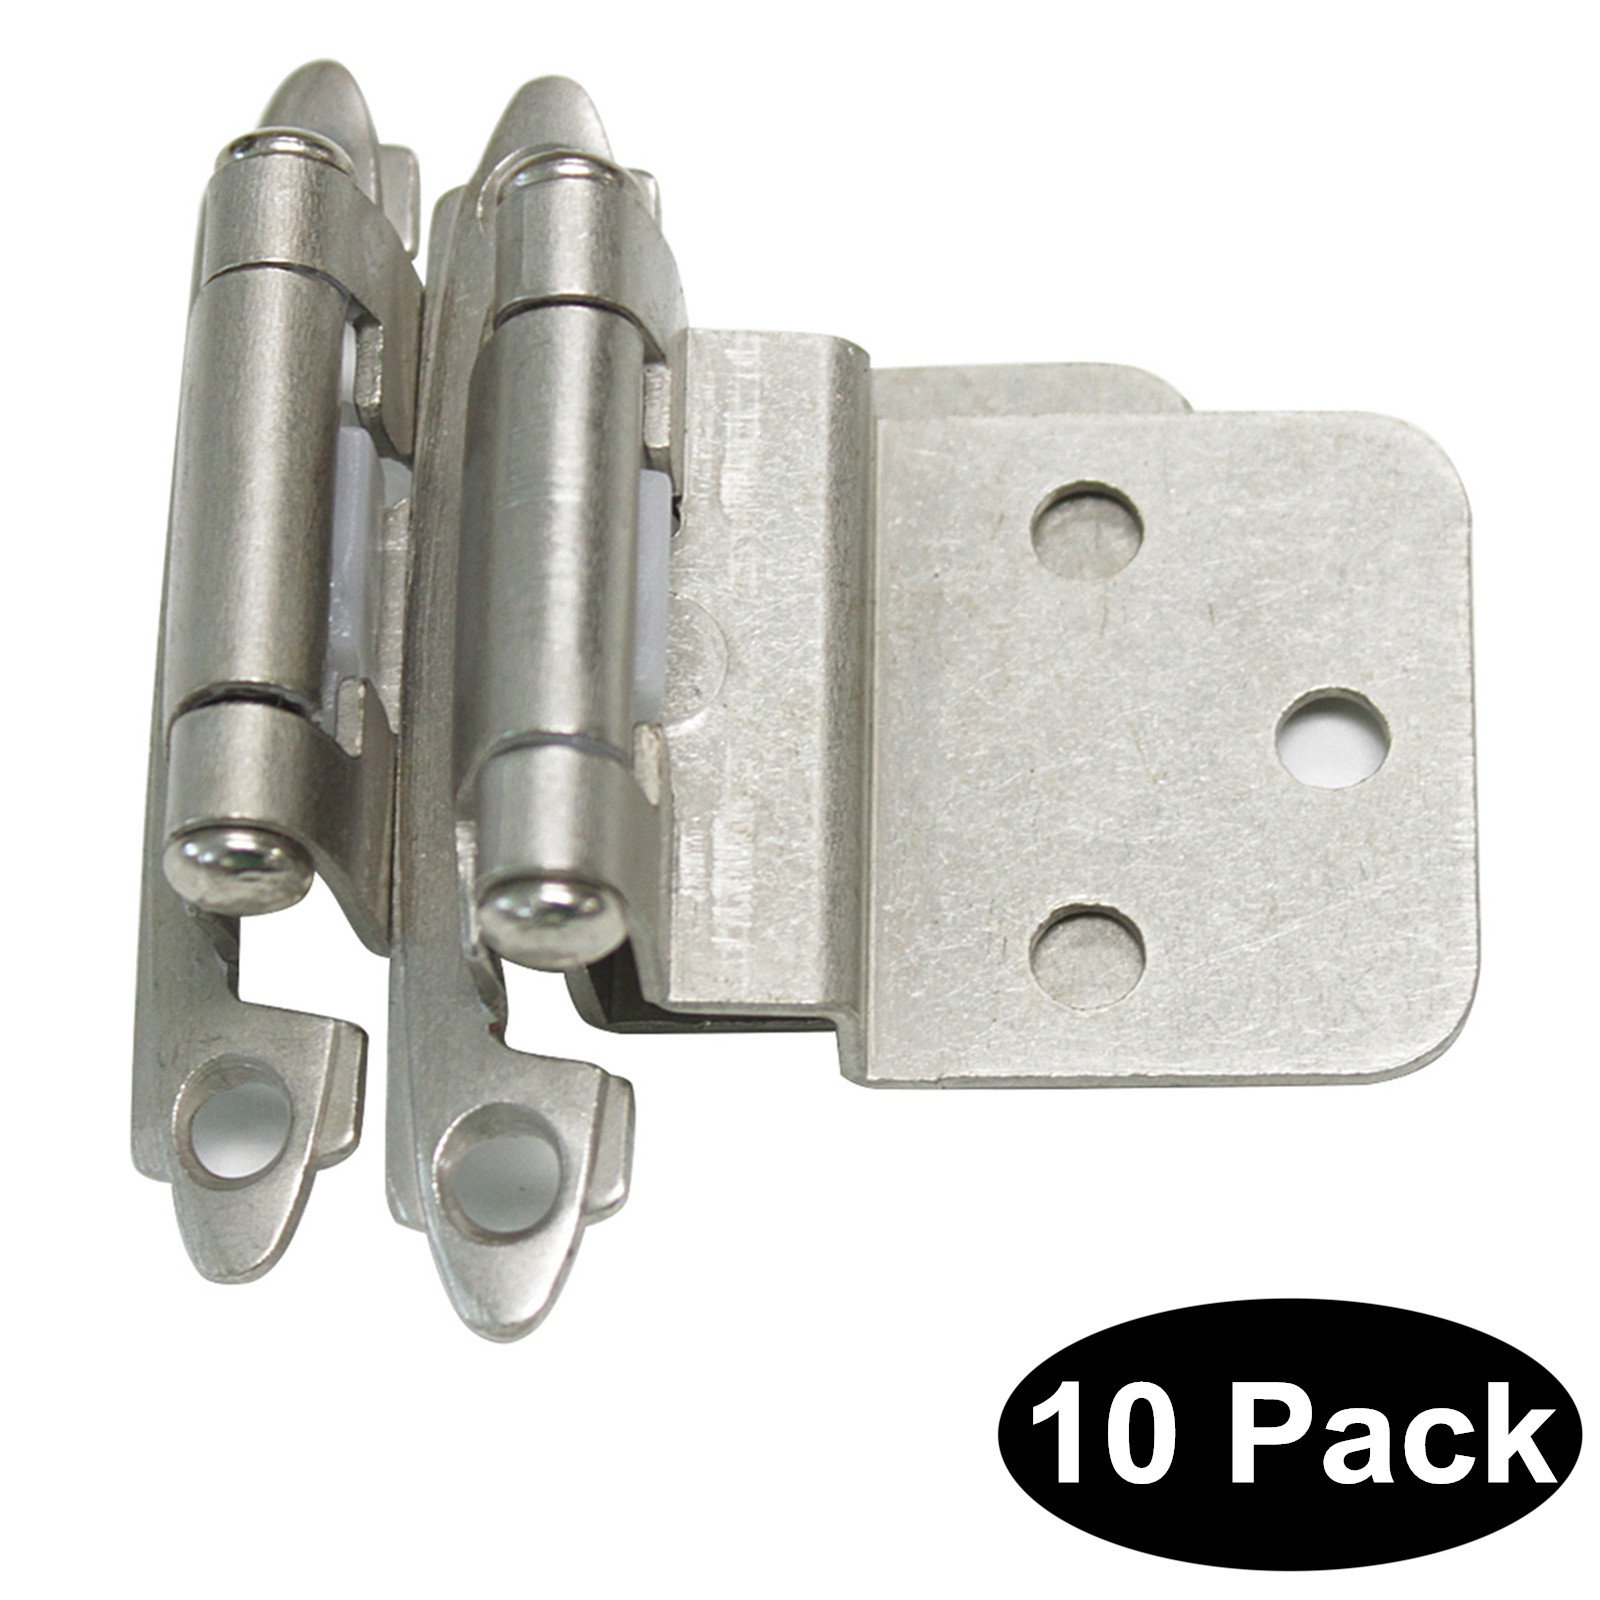 10 PCS Probrico HMCH198-SN Decorative Self Closing Face Mount Kitchen Cabinet Hinges Step 3/8''in Overlay Brushed Satin Nickel